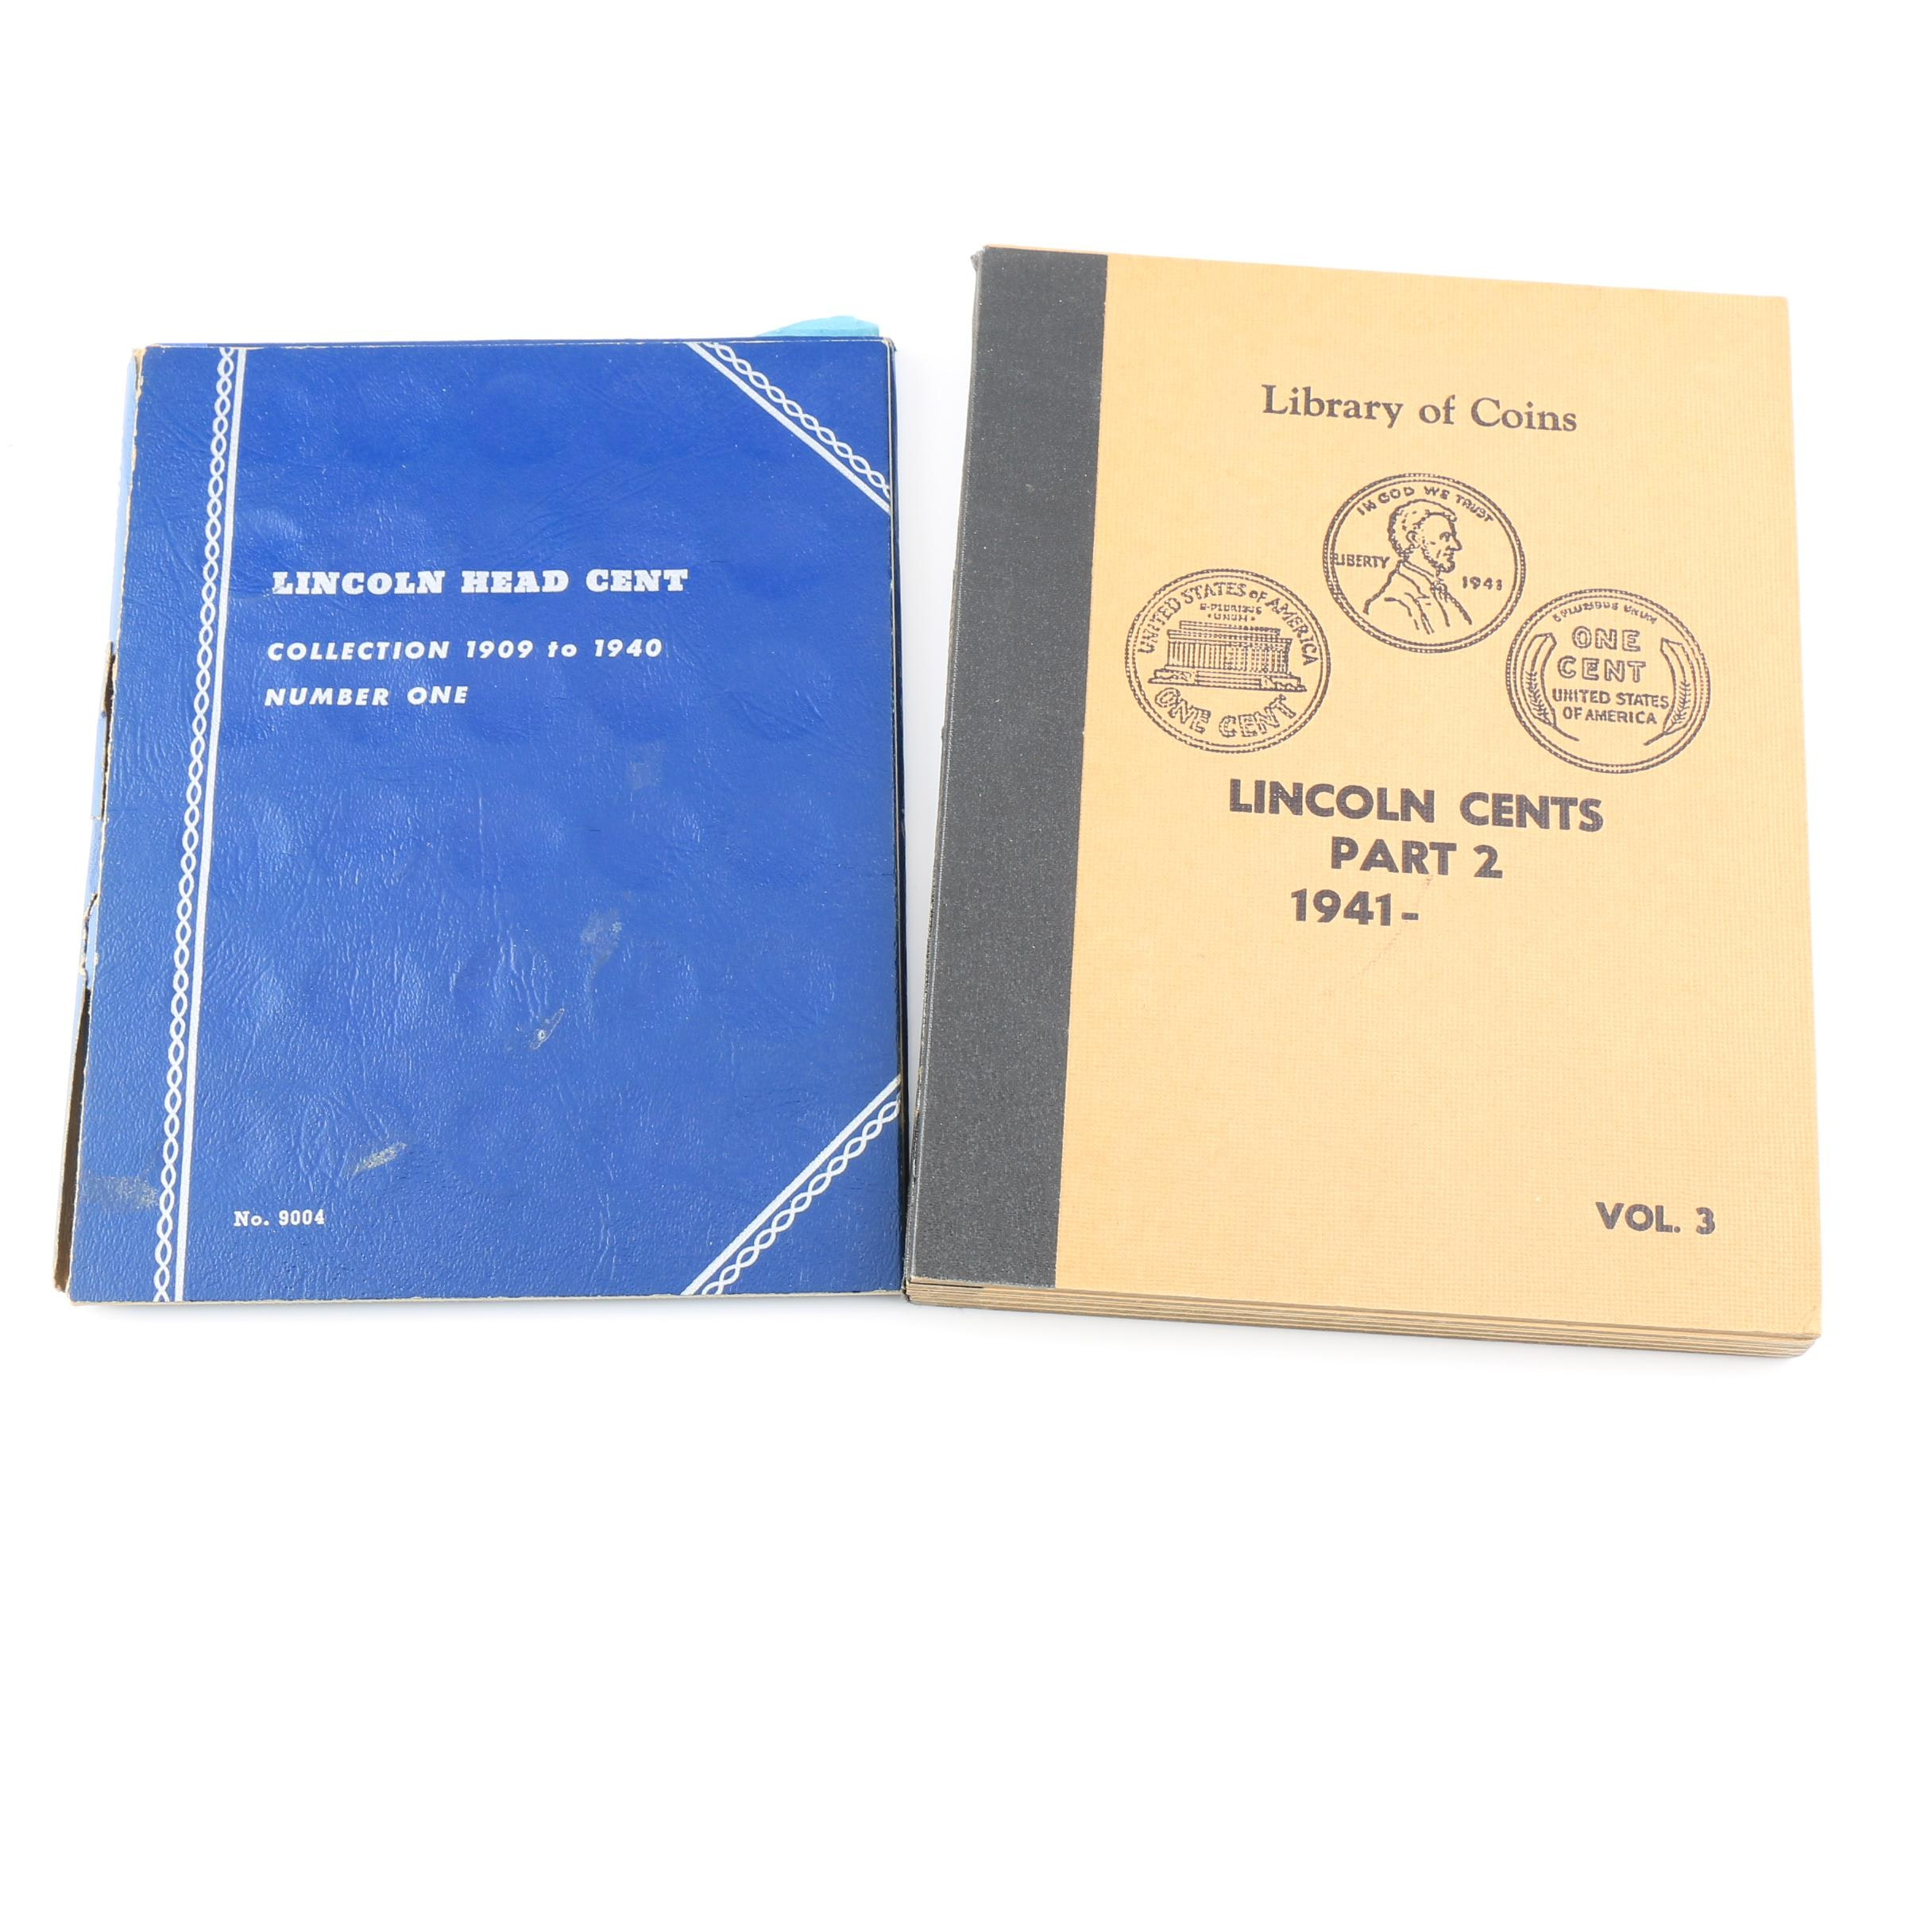 Group of Two Vintage Coin Folders of Lincoln Cents